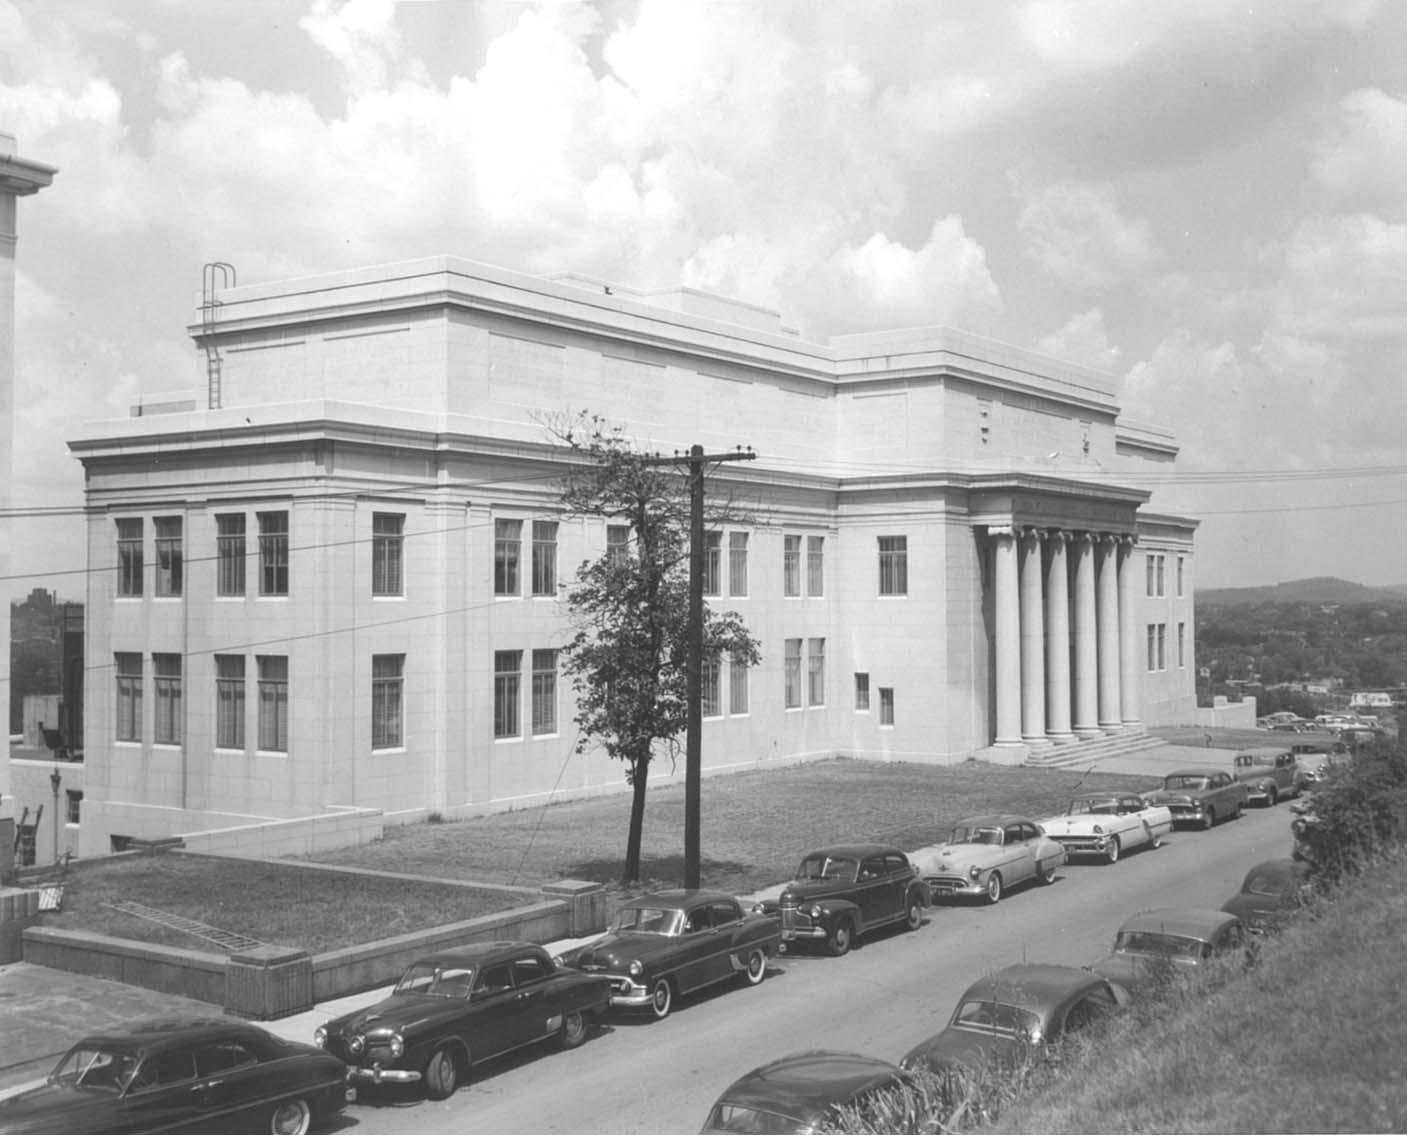 Tennessee State Library and Archives in the mid-1950s (image from Nashville Public Radio)